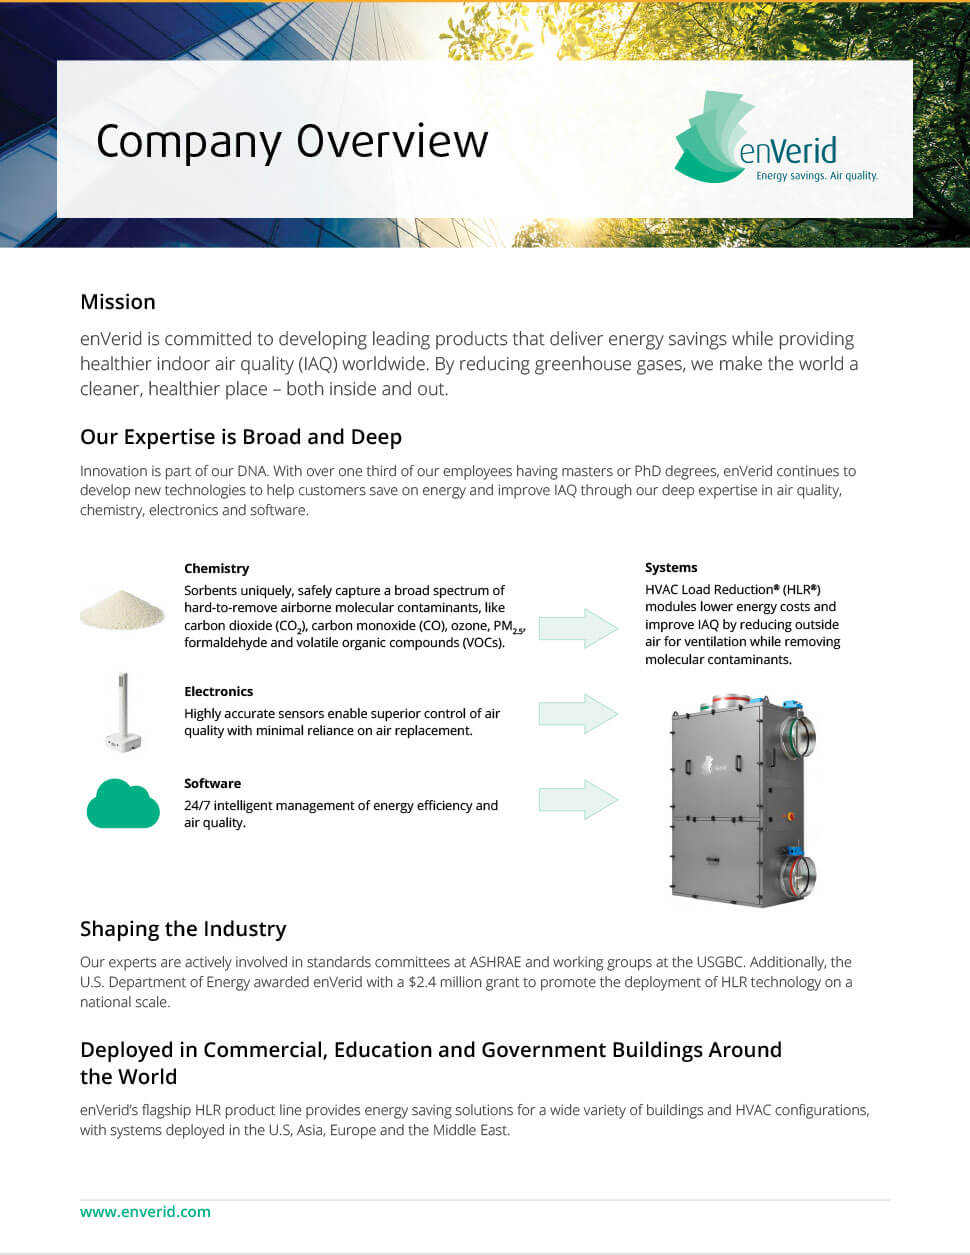 Company overview design